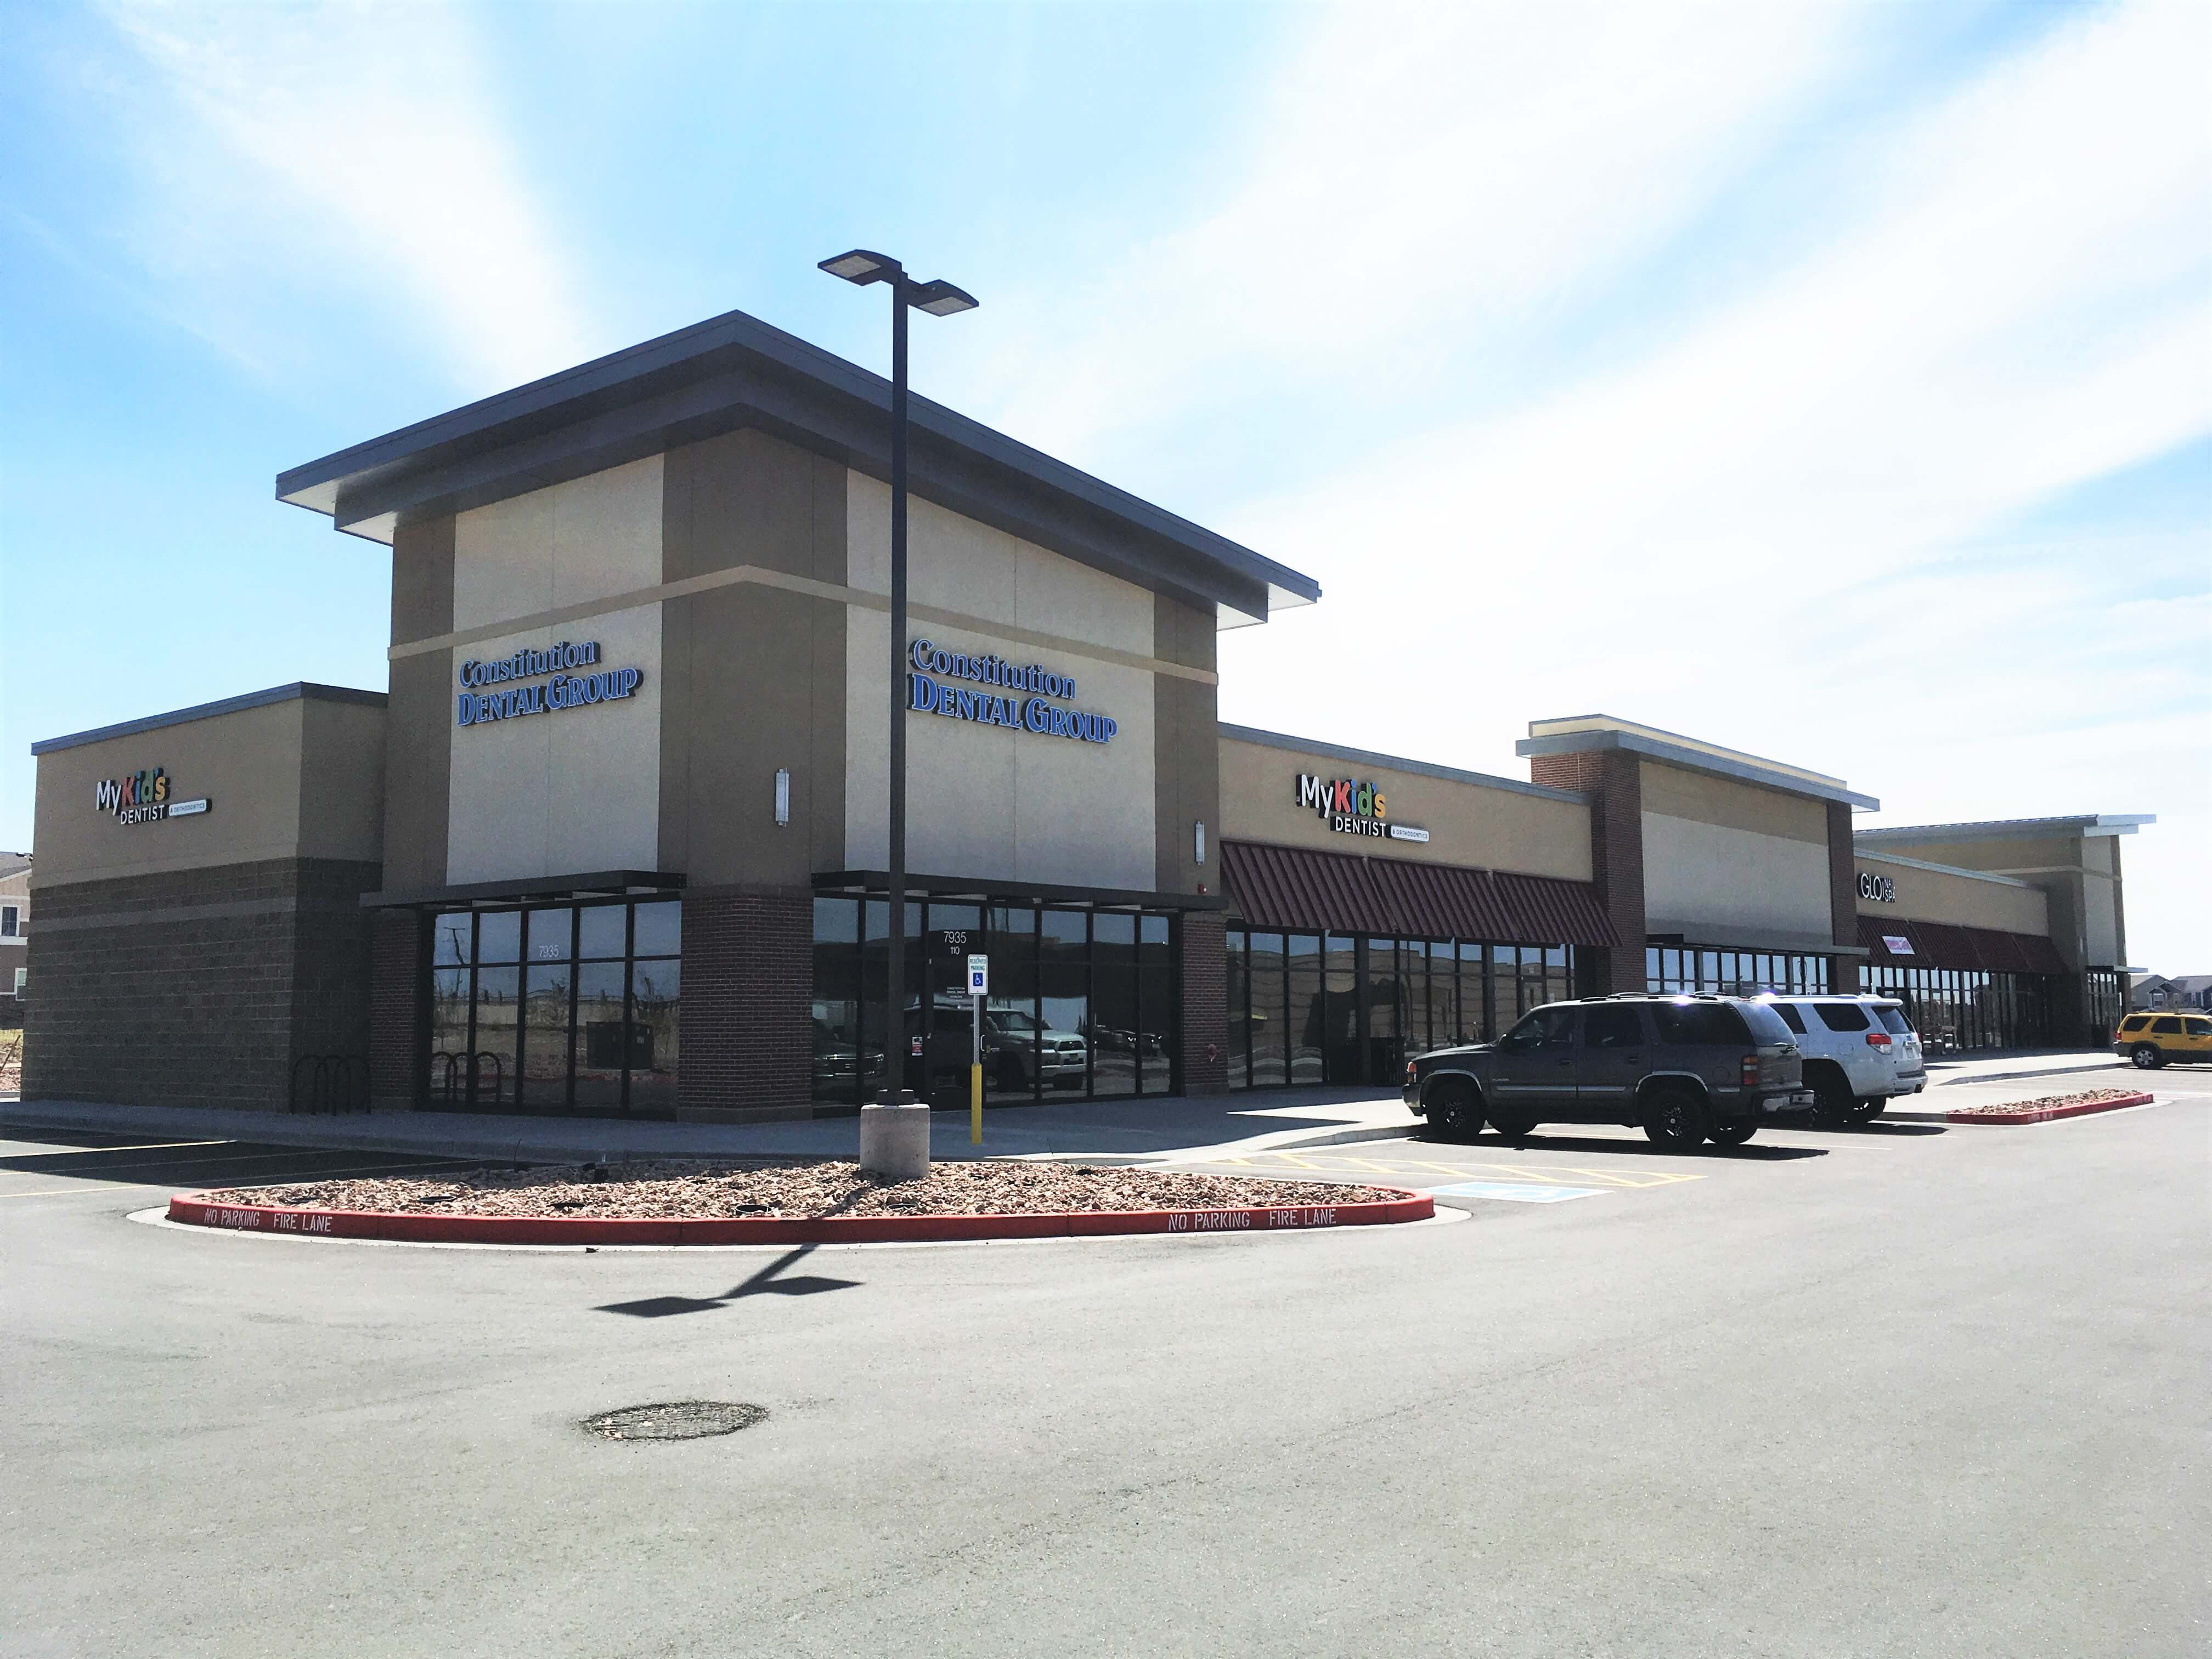 Retail Development & King Soopers Marketplace at Claremont Ranch